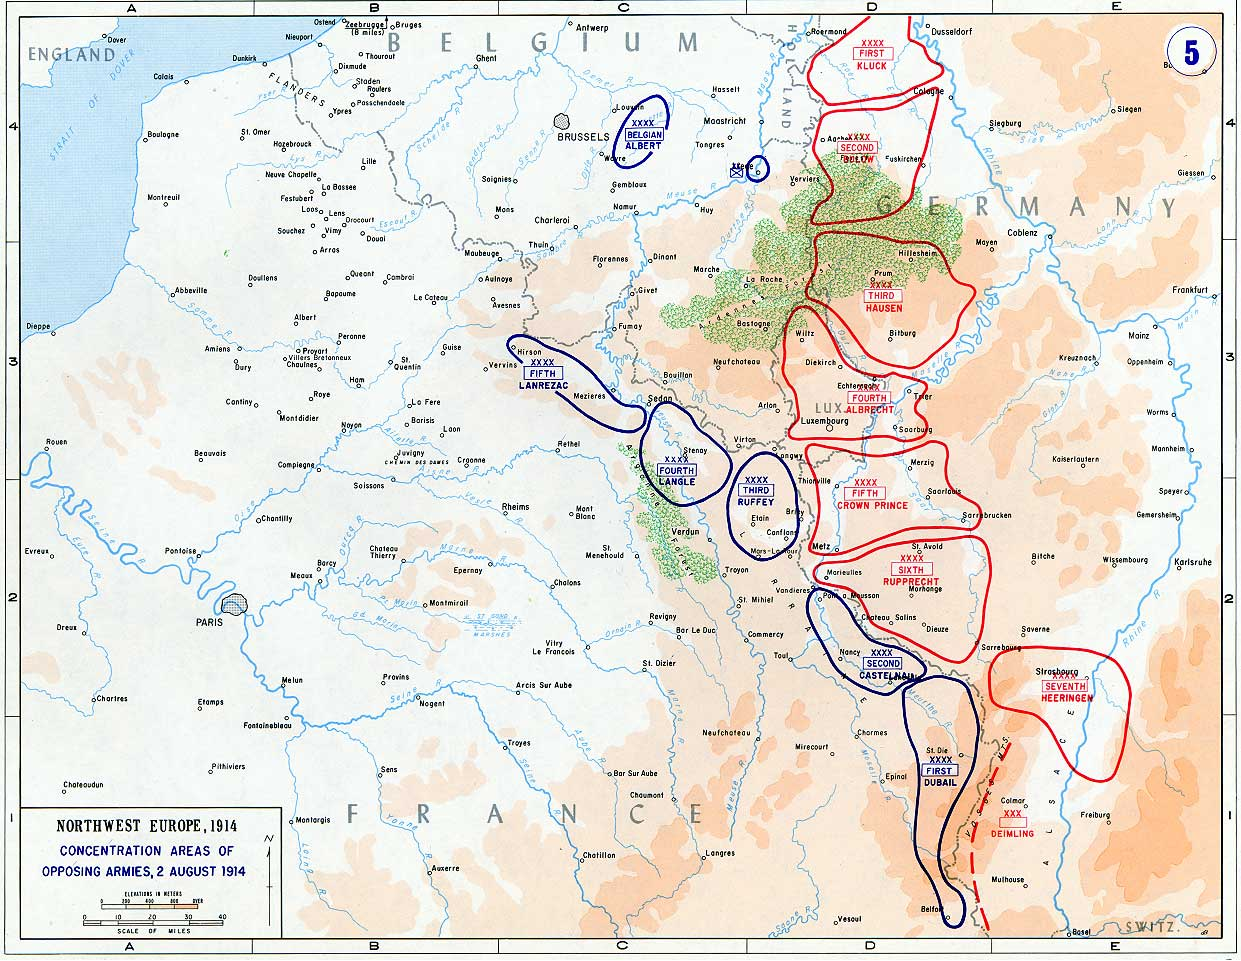 Deployments in the West, August 1914